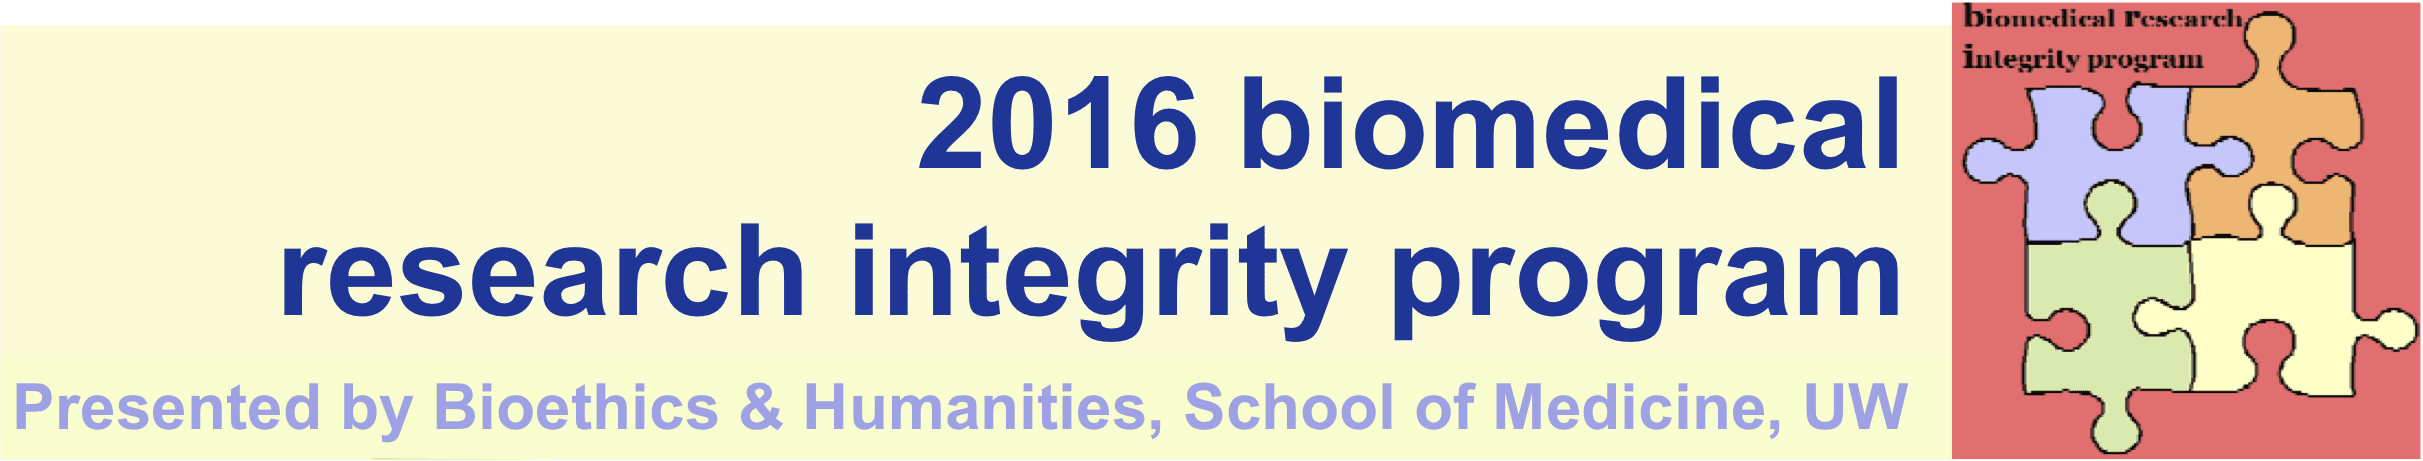 Biomedical Research Integrity Program